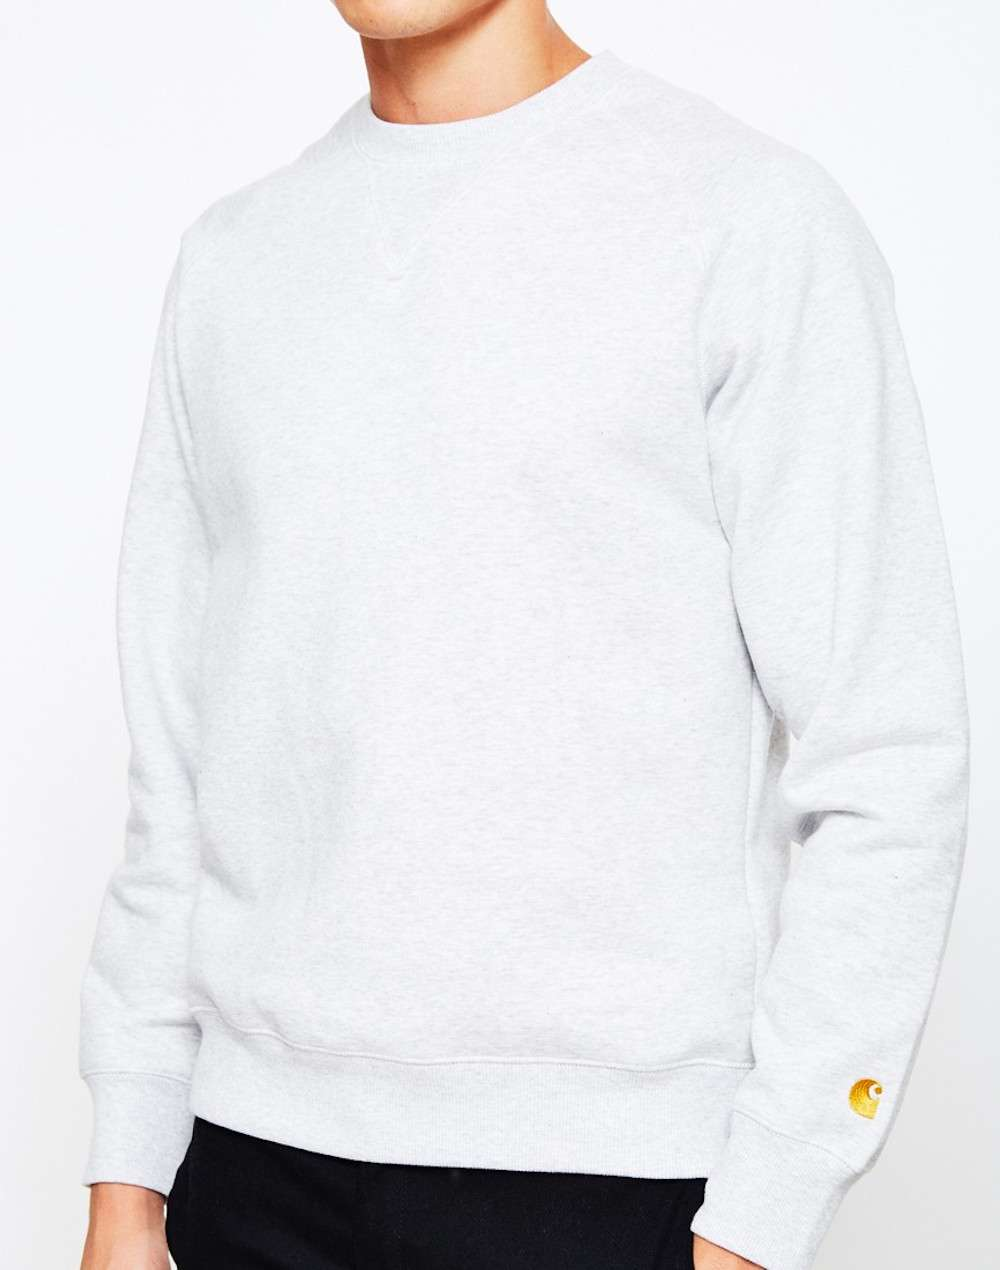 carhartt grey mens sweatshirt